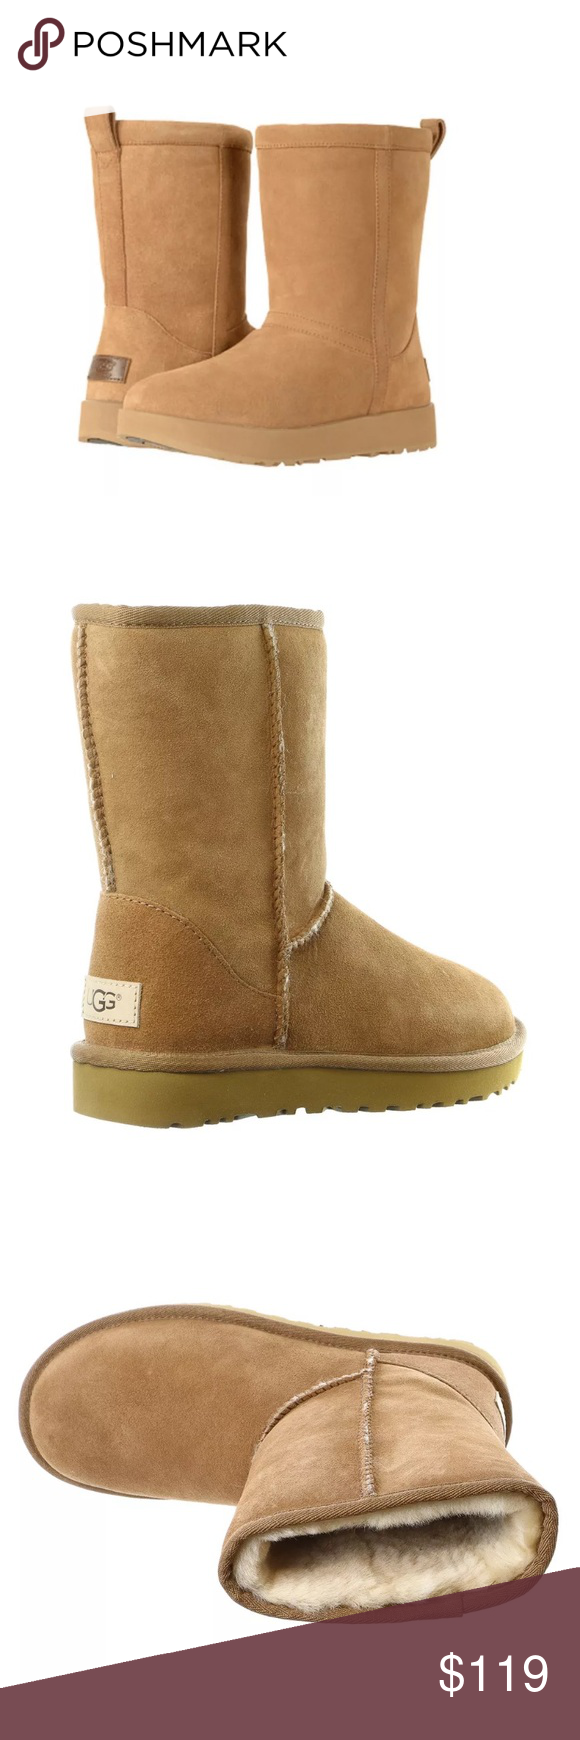 5f8d6fae10fa Ugg women s classic short waterproof snow boot Brand new in box (chestnut  color) size 5 women s